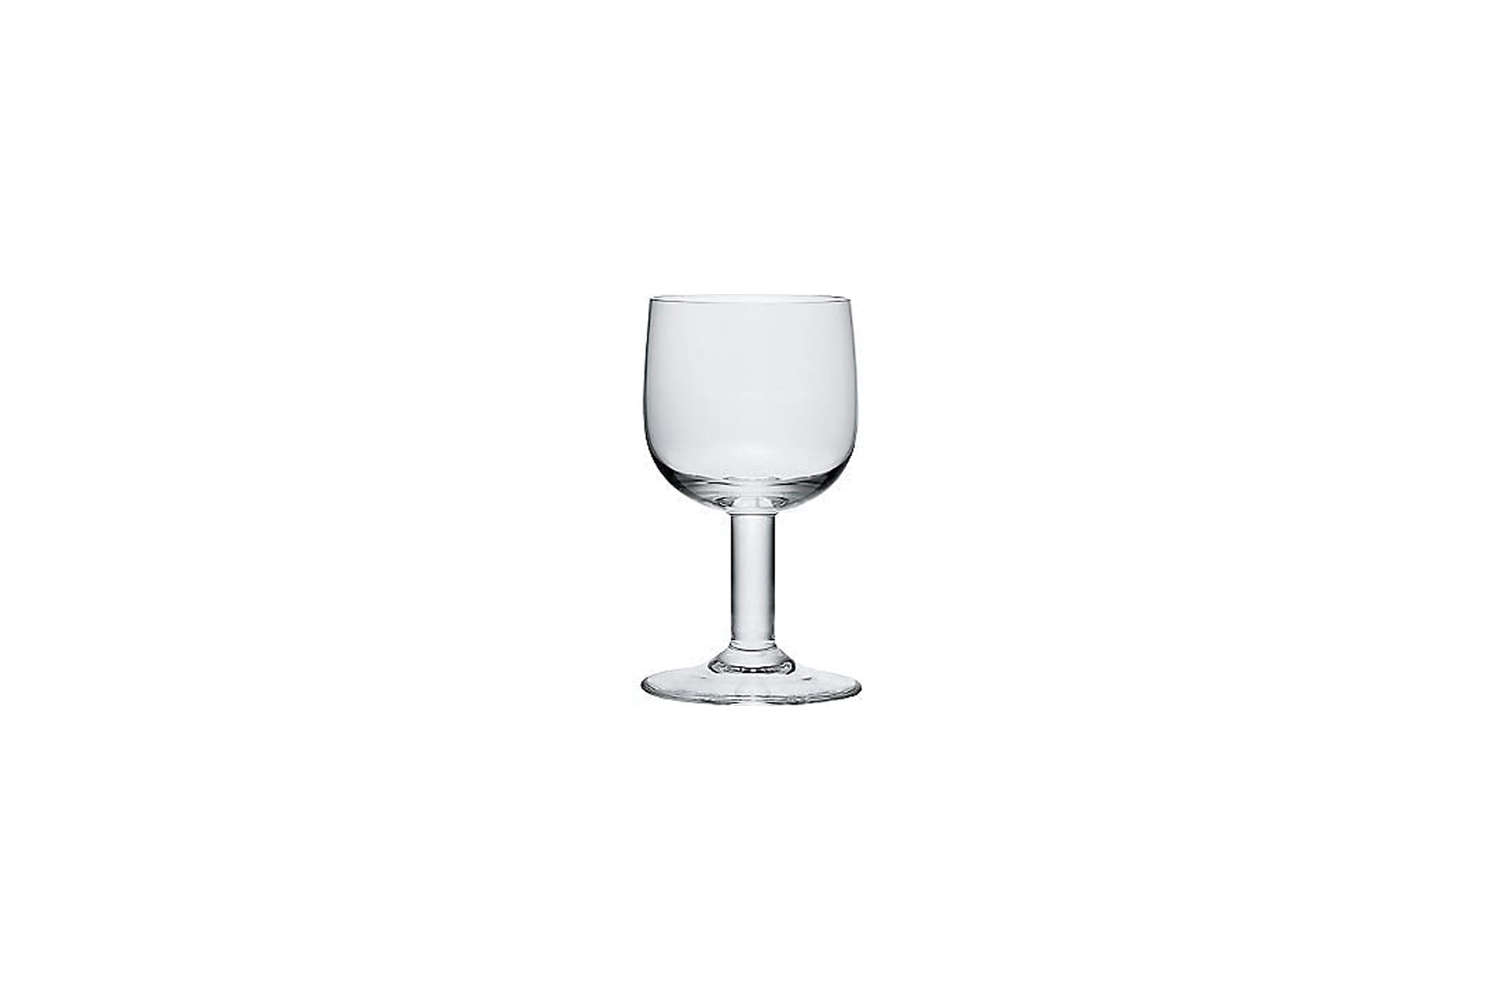 francesca&#8\2\17;s choice for everyday is the alessi wine goblet, designed 13